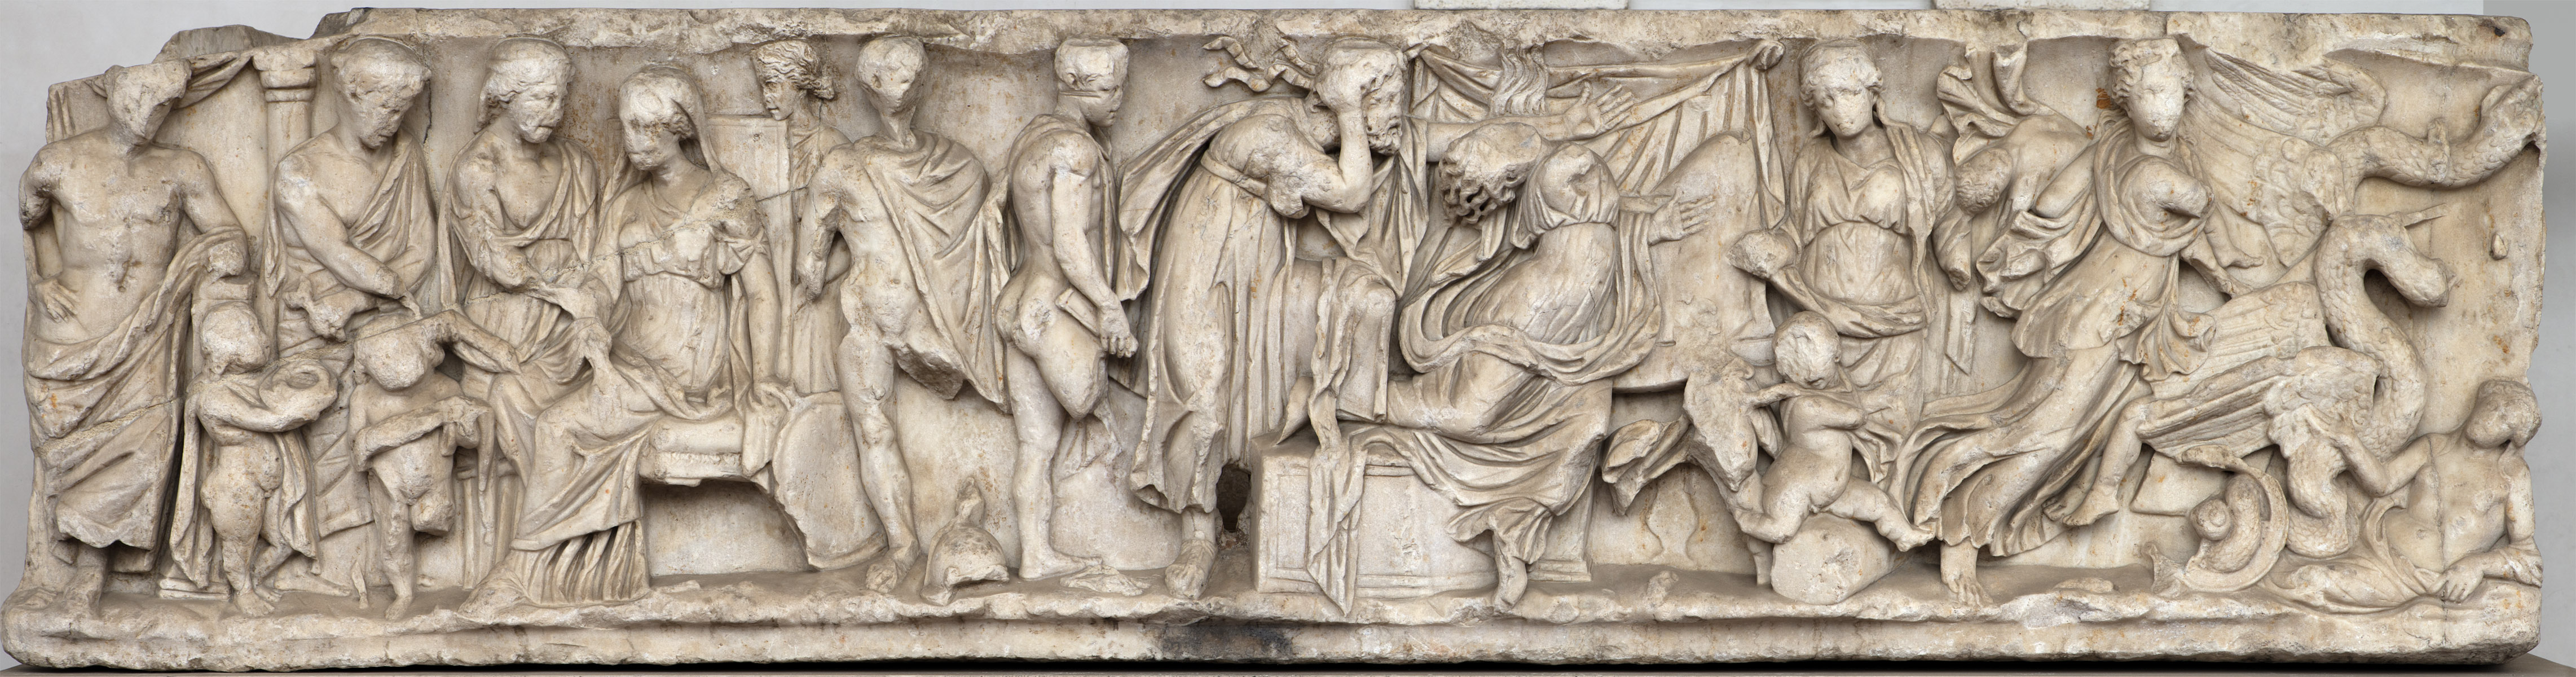 Scenes of the myth of Medea. Front panel of sarcophagus. Greek marble. 150—170 CE. Inv. No. 222. Rome, Roman National Museum, Baths of Diocletian